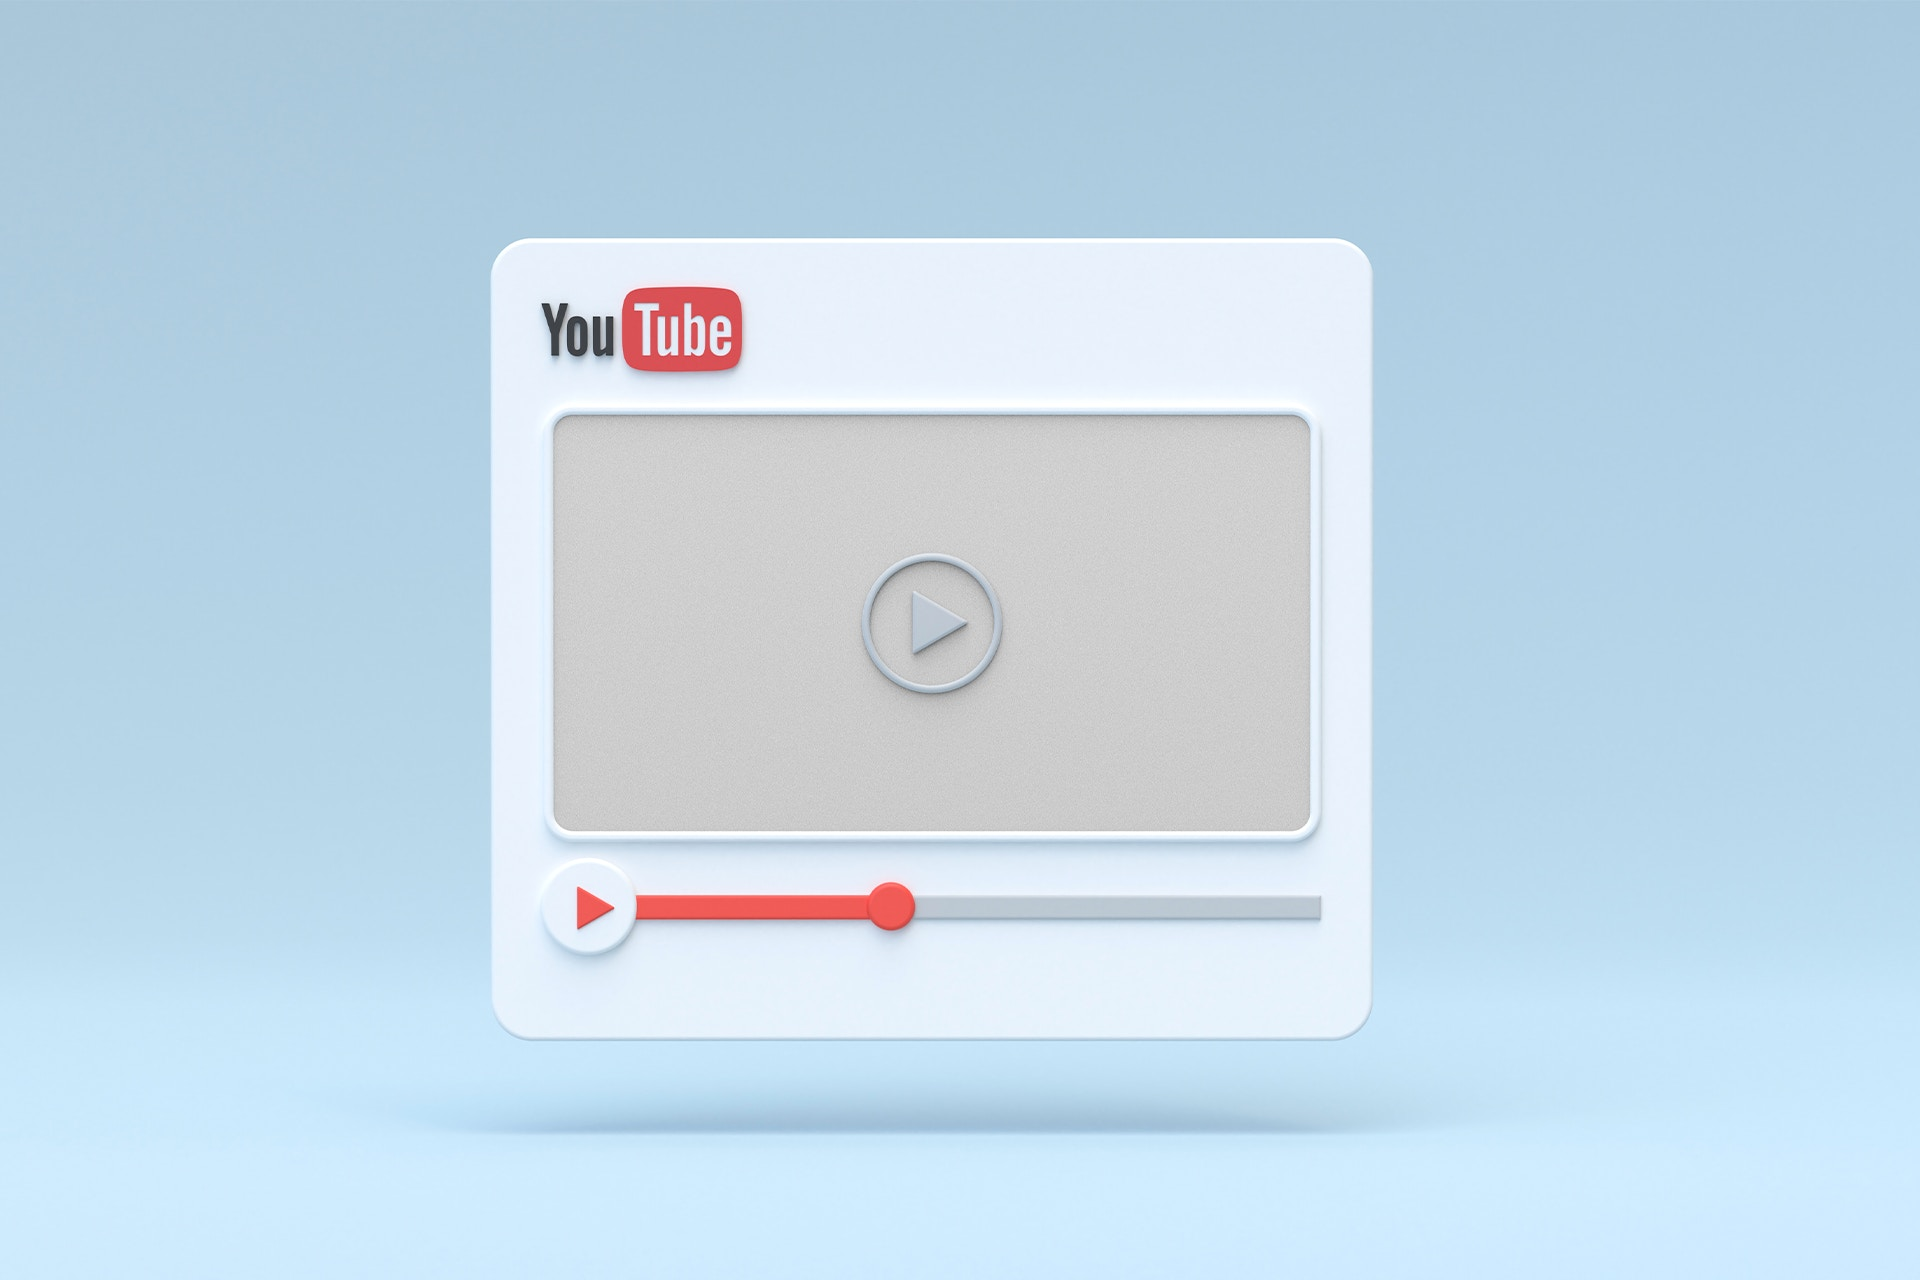 How to create and manage a YouTube channel. Image with YouTube video on blue background showing video red play bar quarter way through